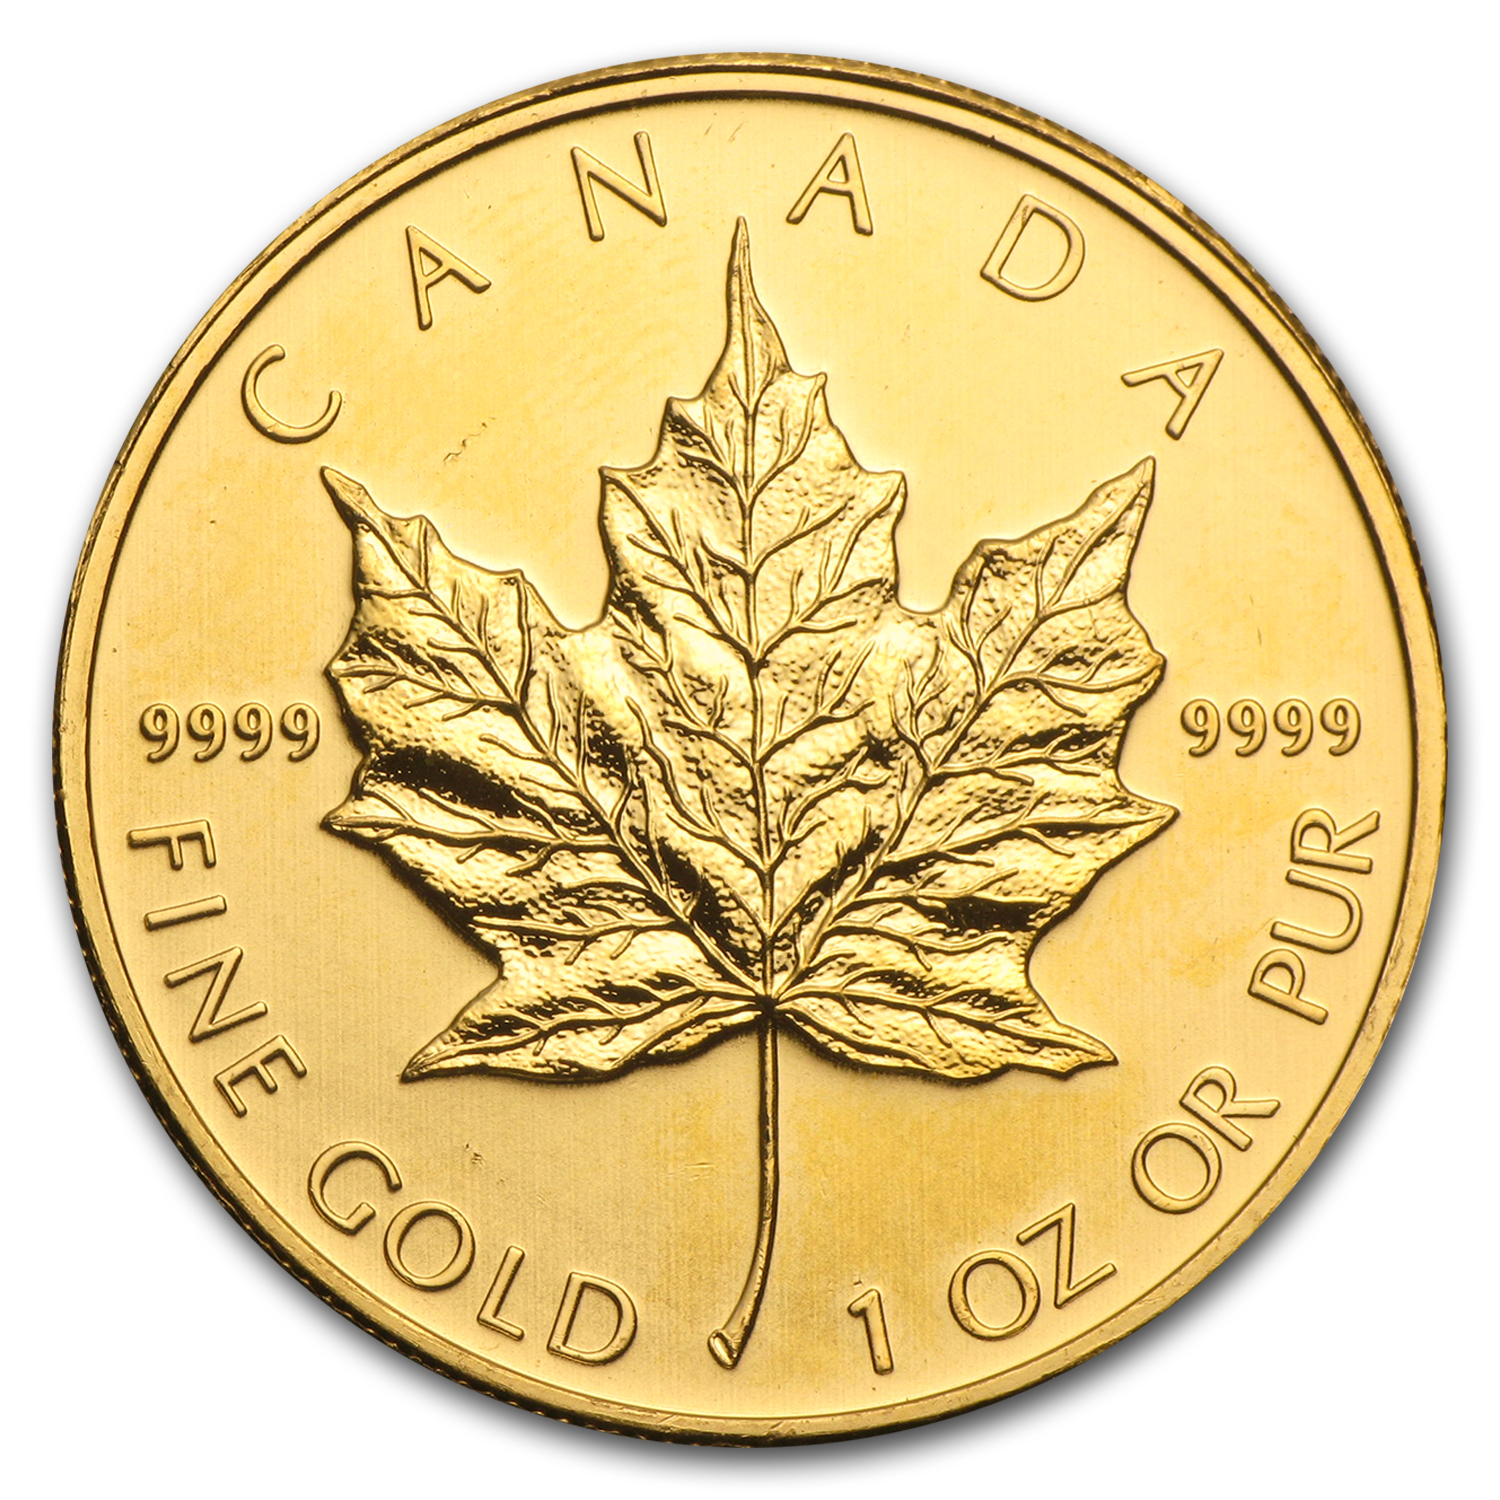 2011 1 oz Gold Canadian Maple Leaf BU